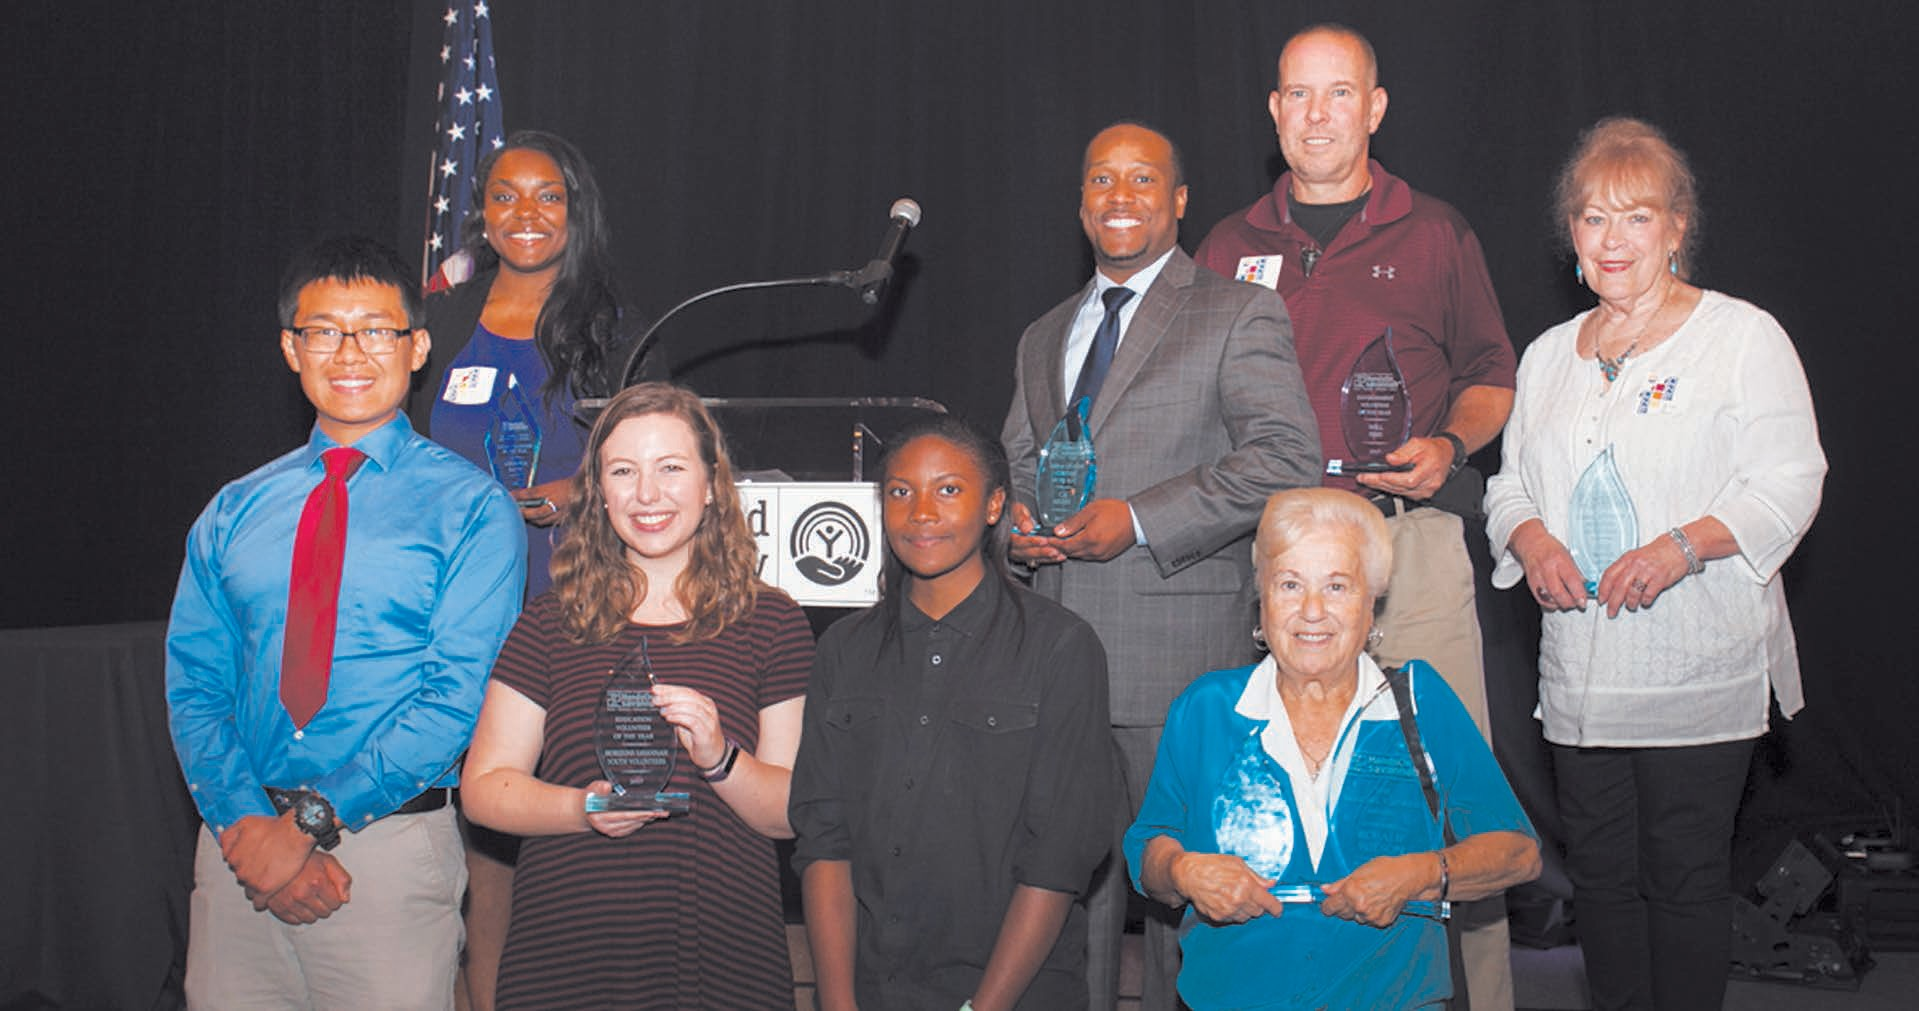 Left to right, top to bottom: Abreona Batts, C.A. Miller, Will Sims, Jane Mace, Horizons Savannah volunteers (3), Rosalie Wilson.